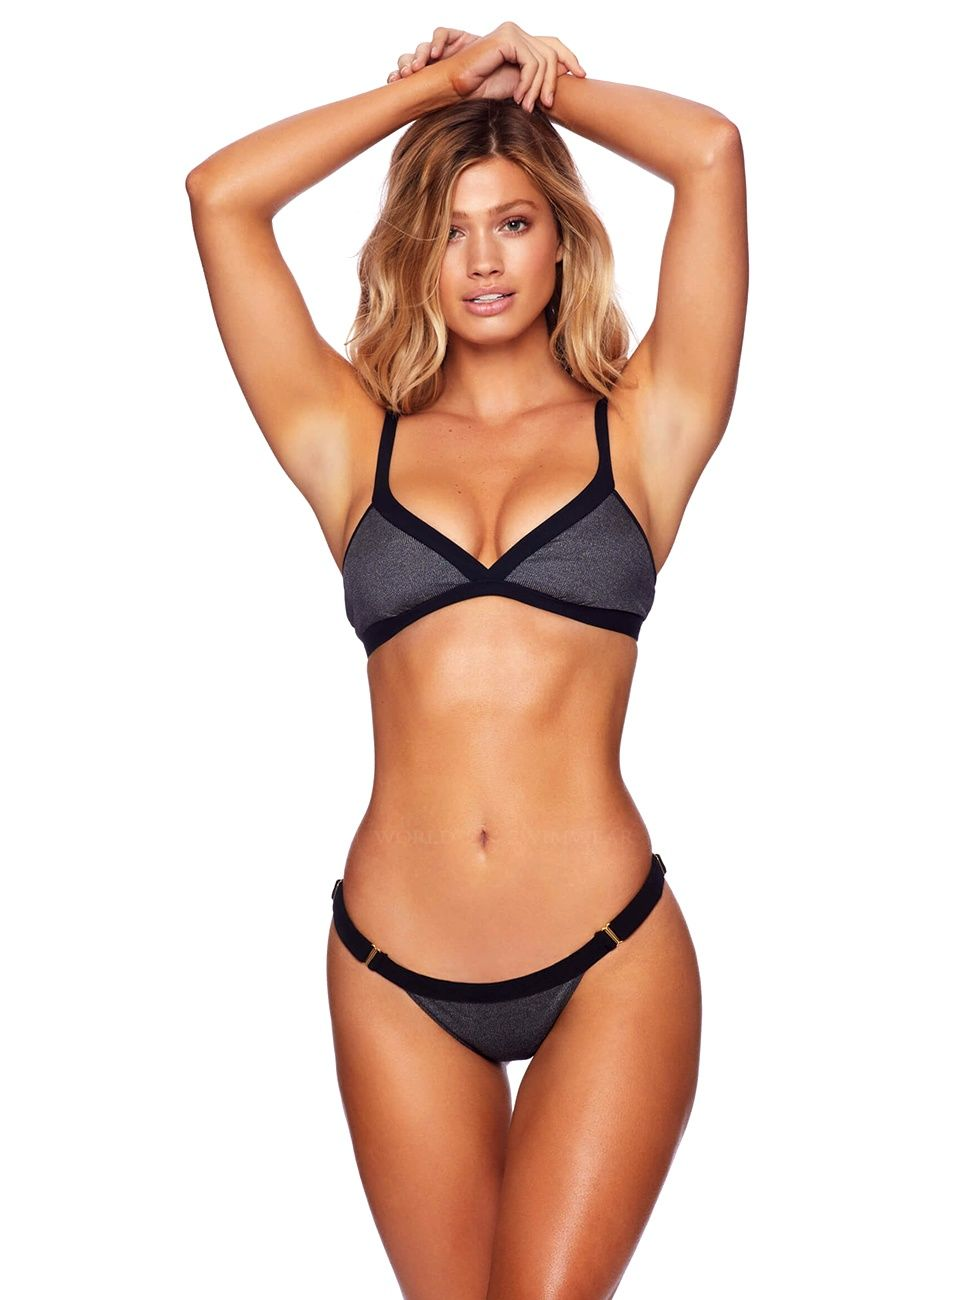 f8202adc02 Ribbed triangle bikini top with adjustable shoulder strap with back clip  closure. Low rise ruched back bikini bottom with adjustable side straps.